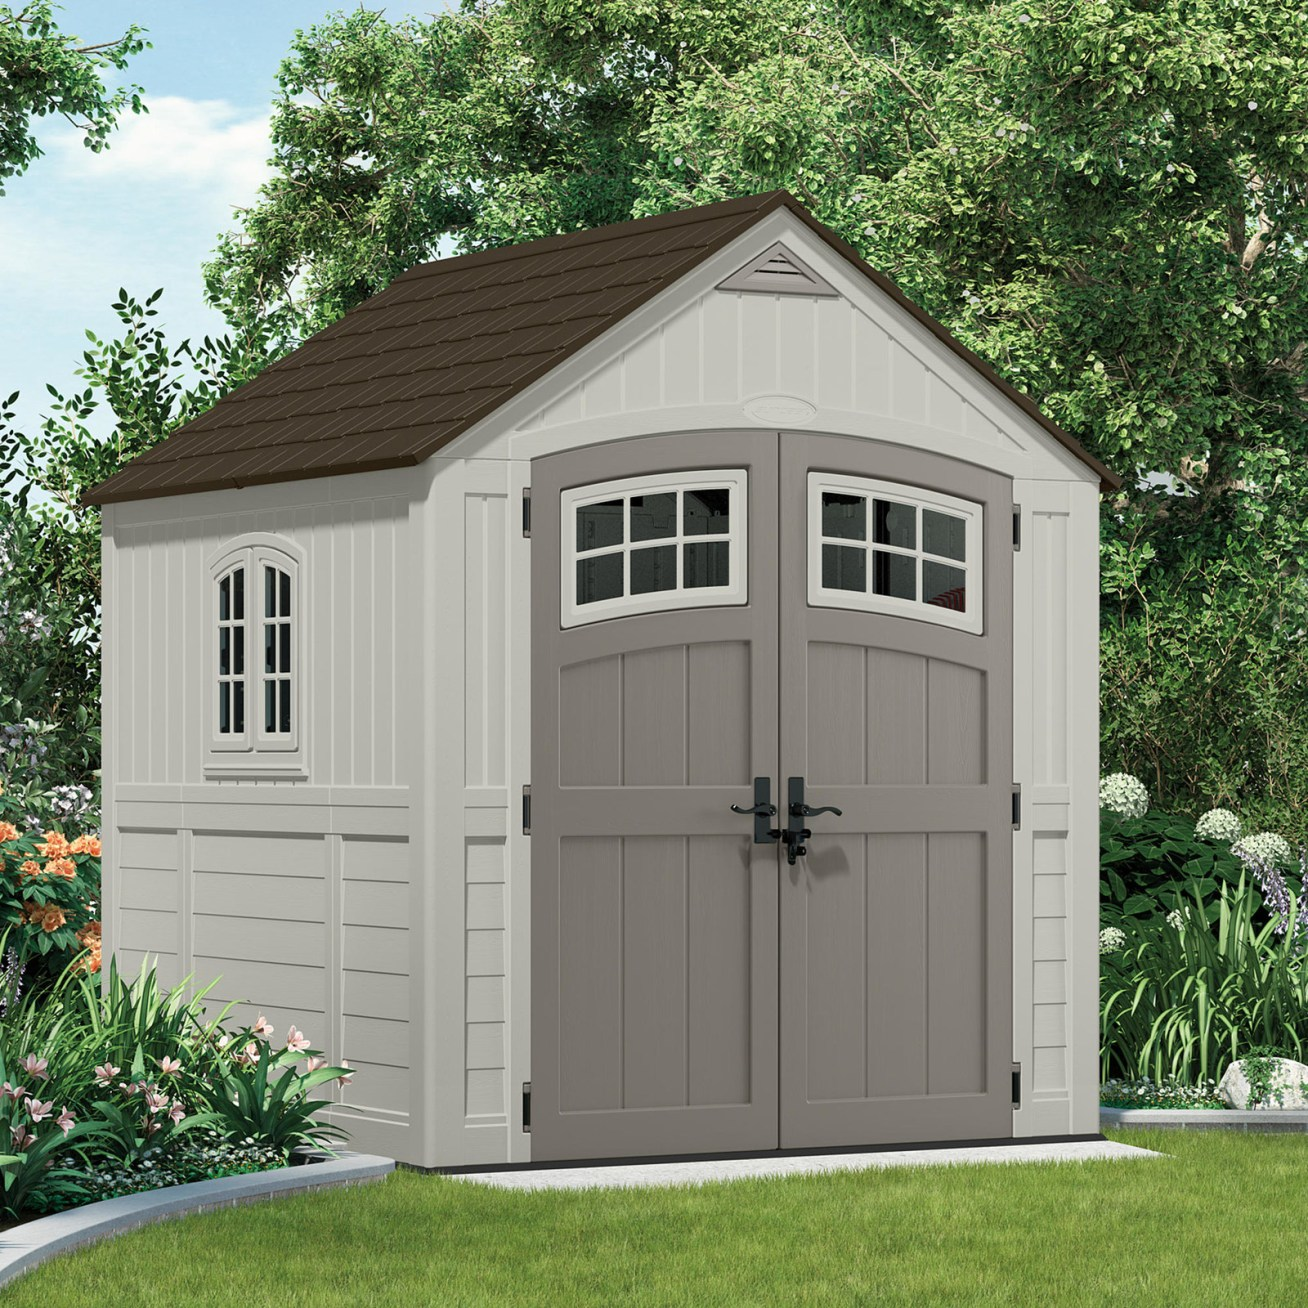 """Promising review: """"My handyman and his assistant put the shed together in three hours. It looks great and meets my expectations for a sturdy, durable, strong, non-wood shed."""" —suznutPrice: 9.99"""